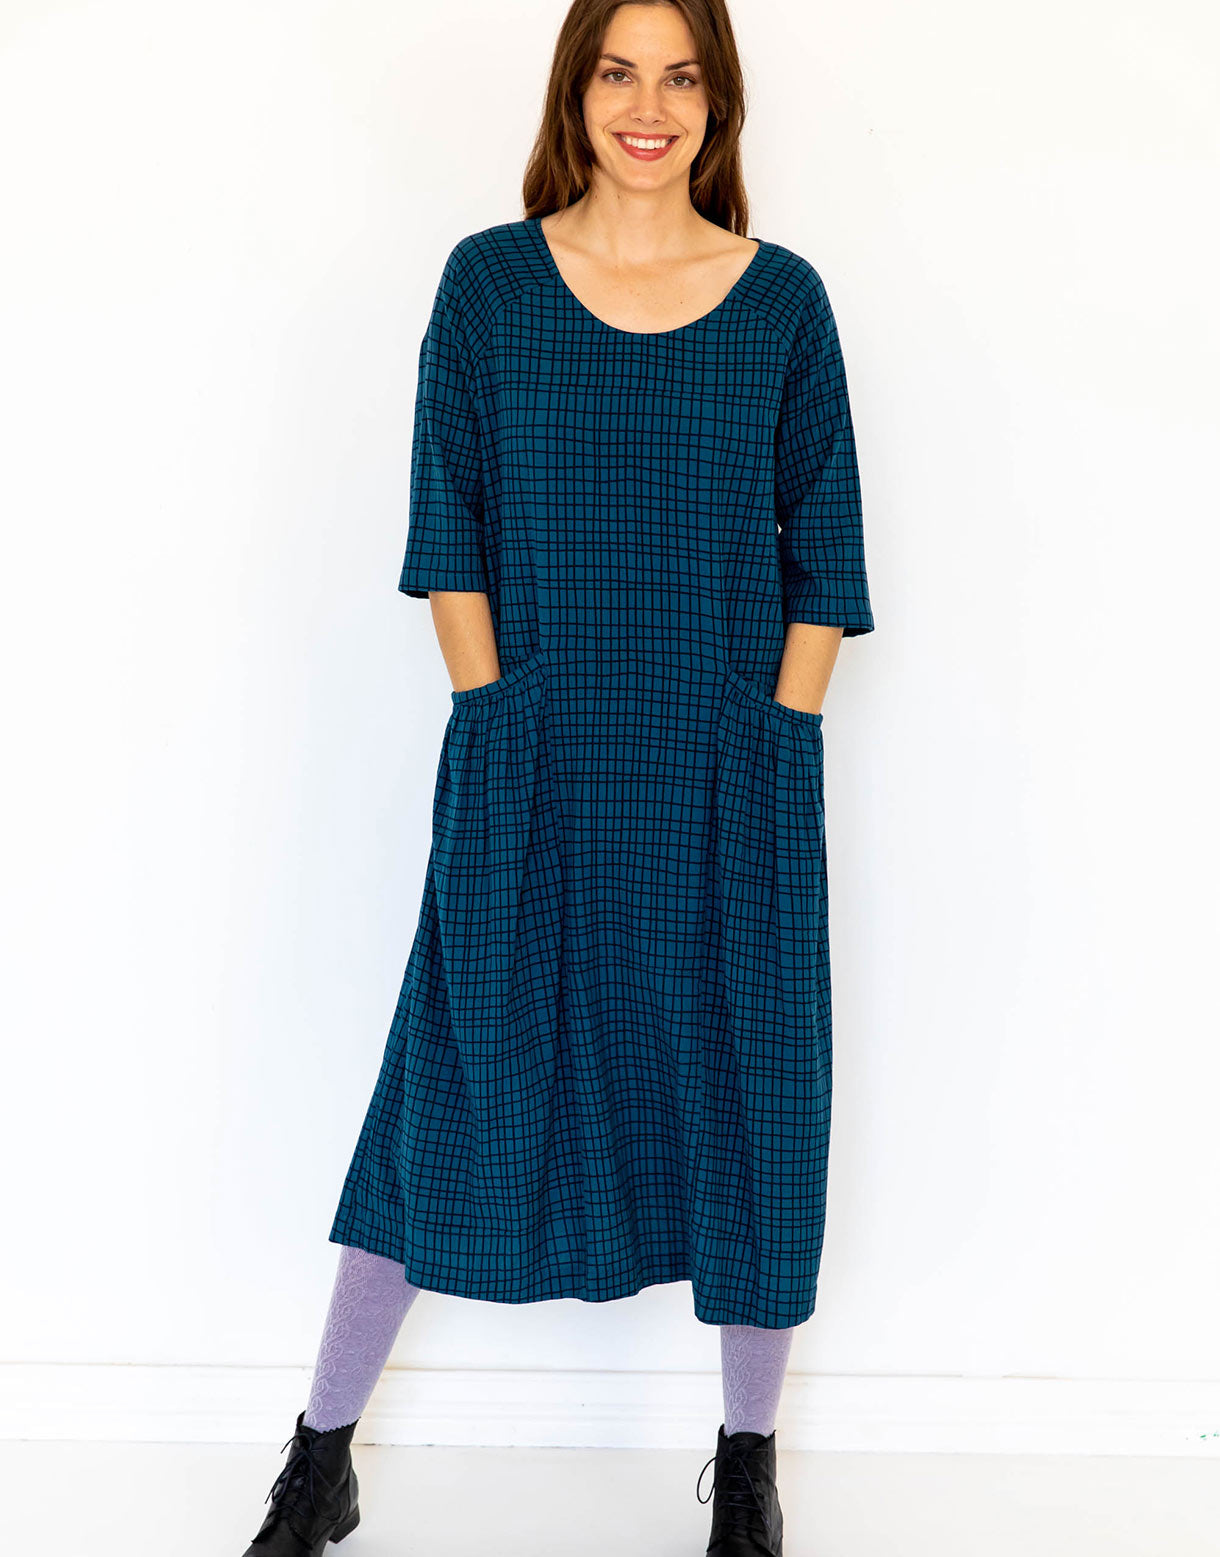 Raya Dress in Grid *organic cotton/recycled flax